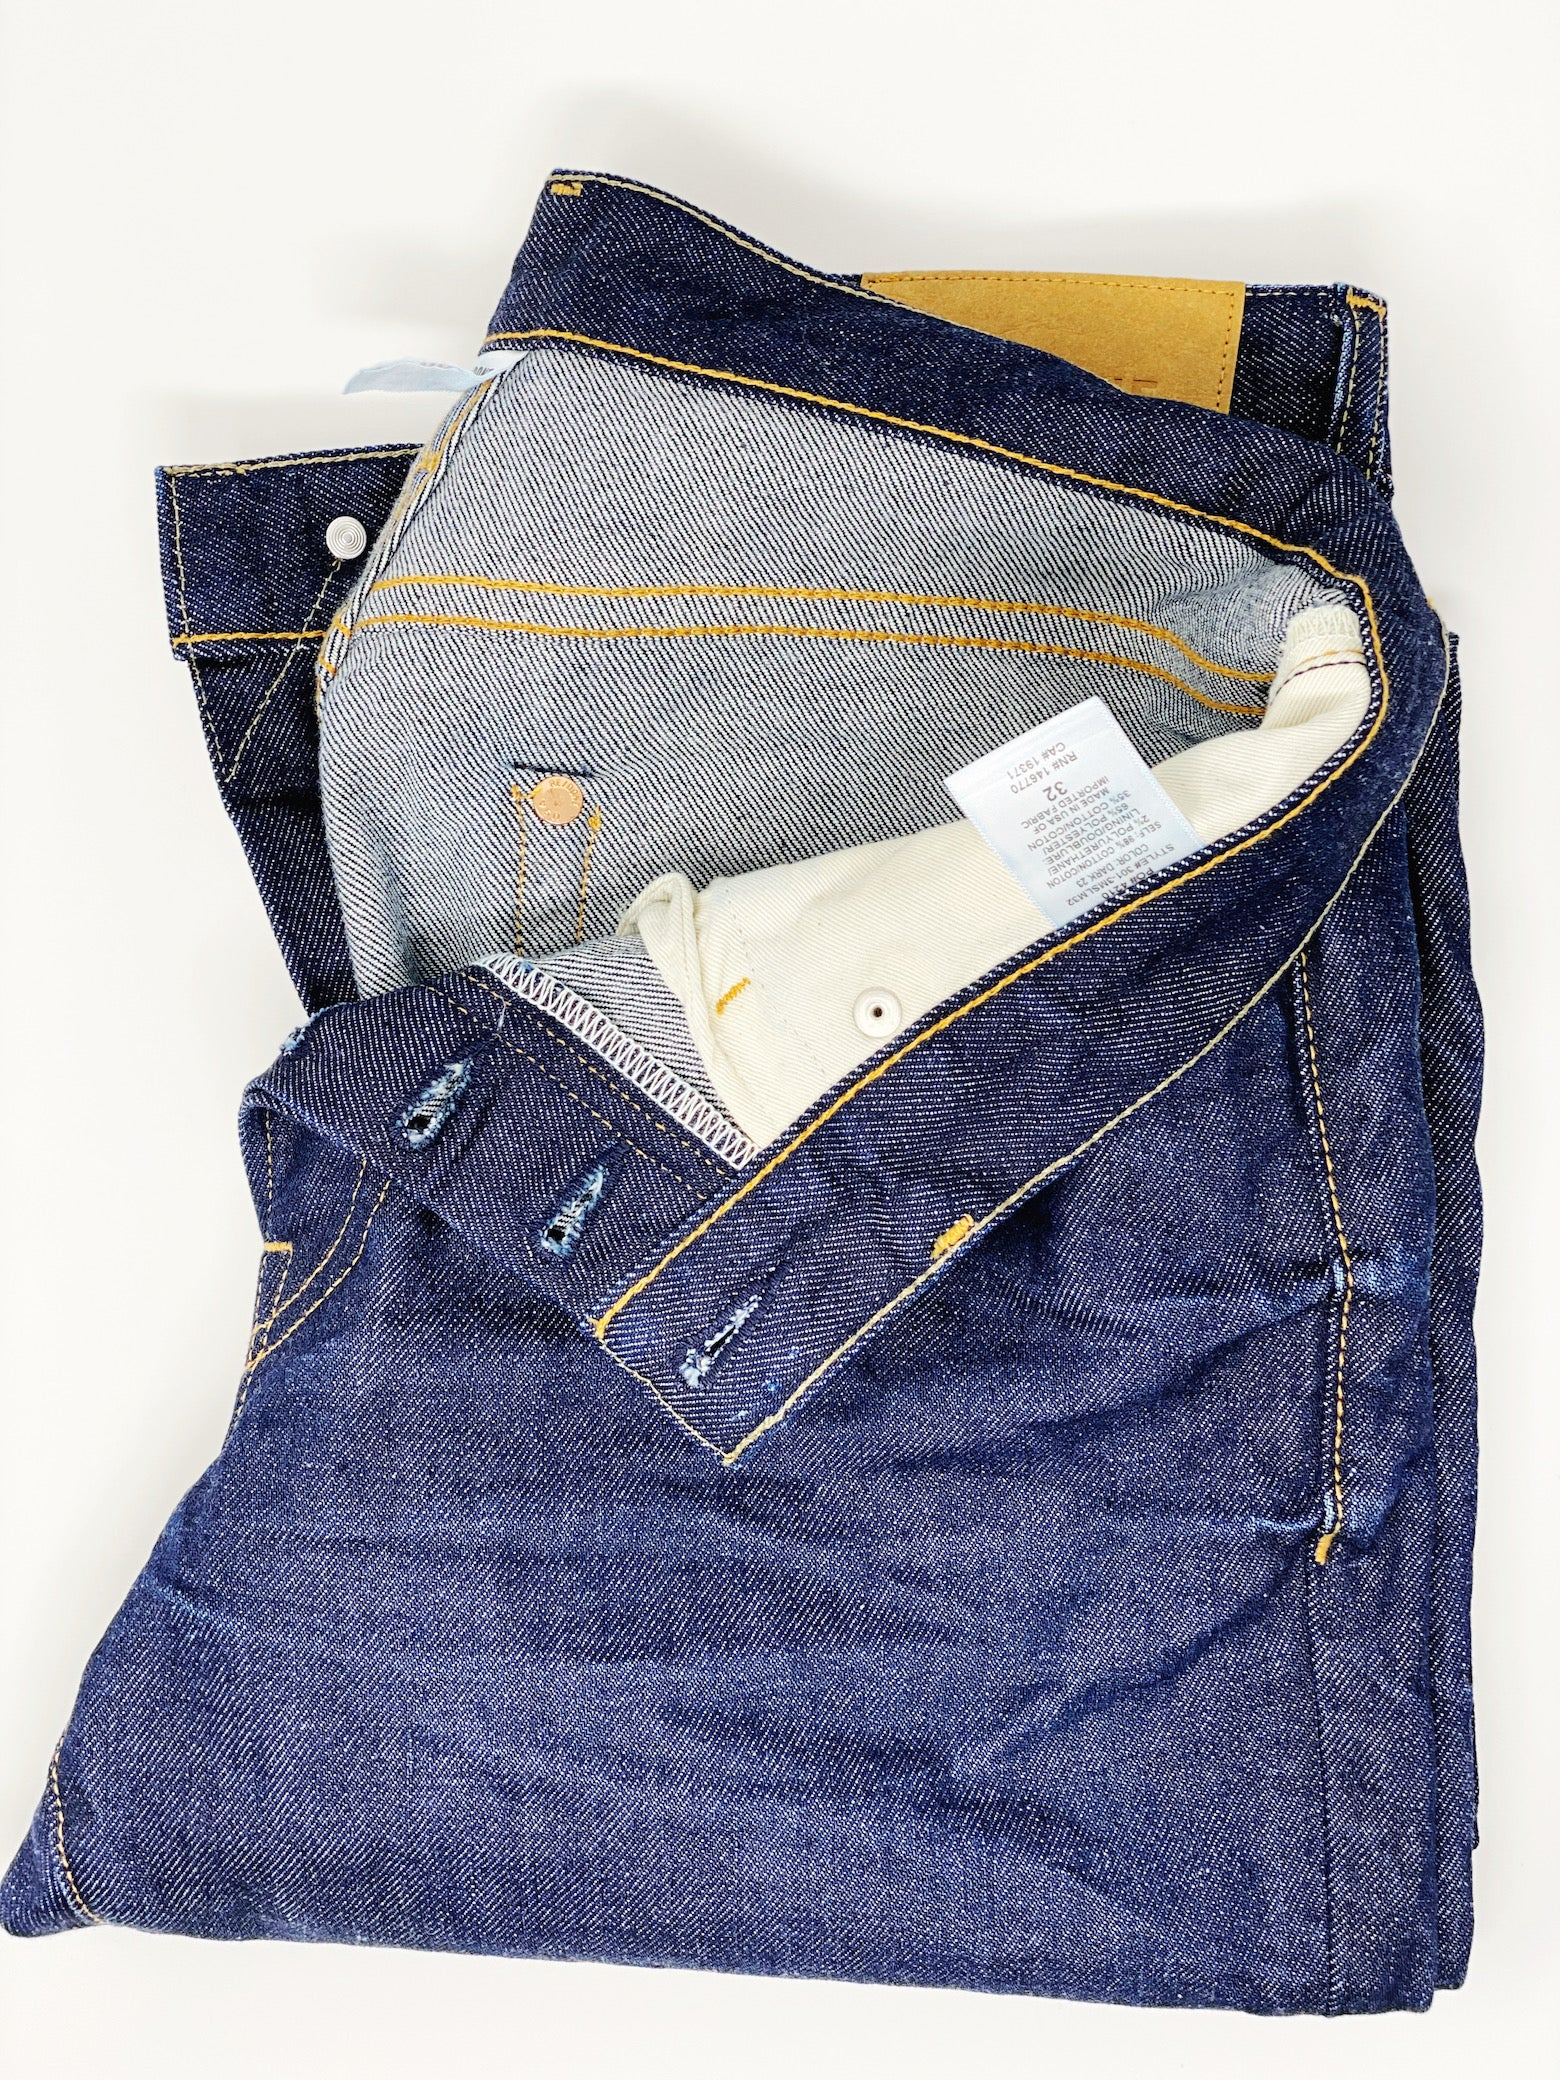 RE/DONE-Slim-Fit-Denim-Jeans-Dark-23